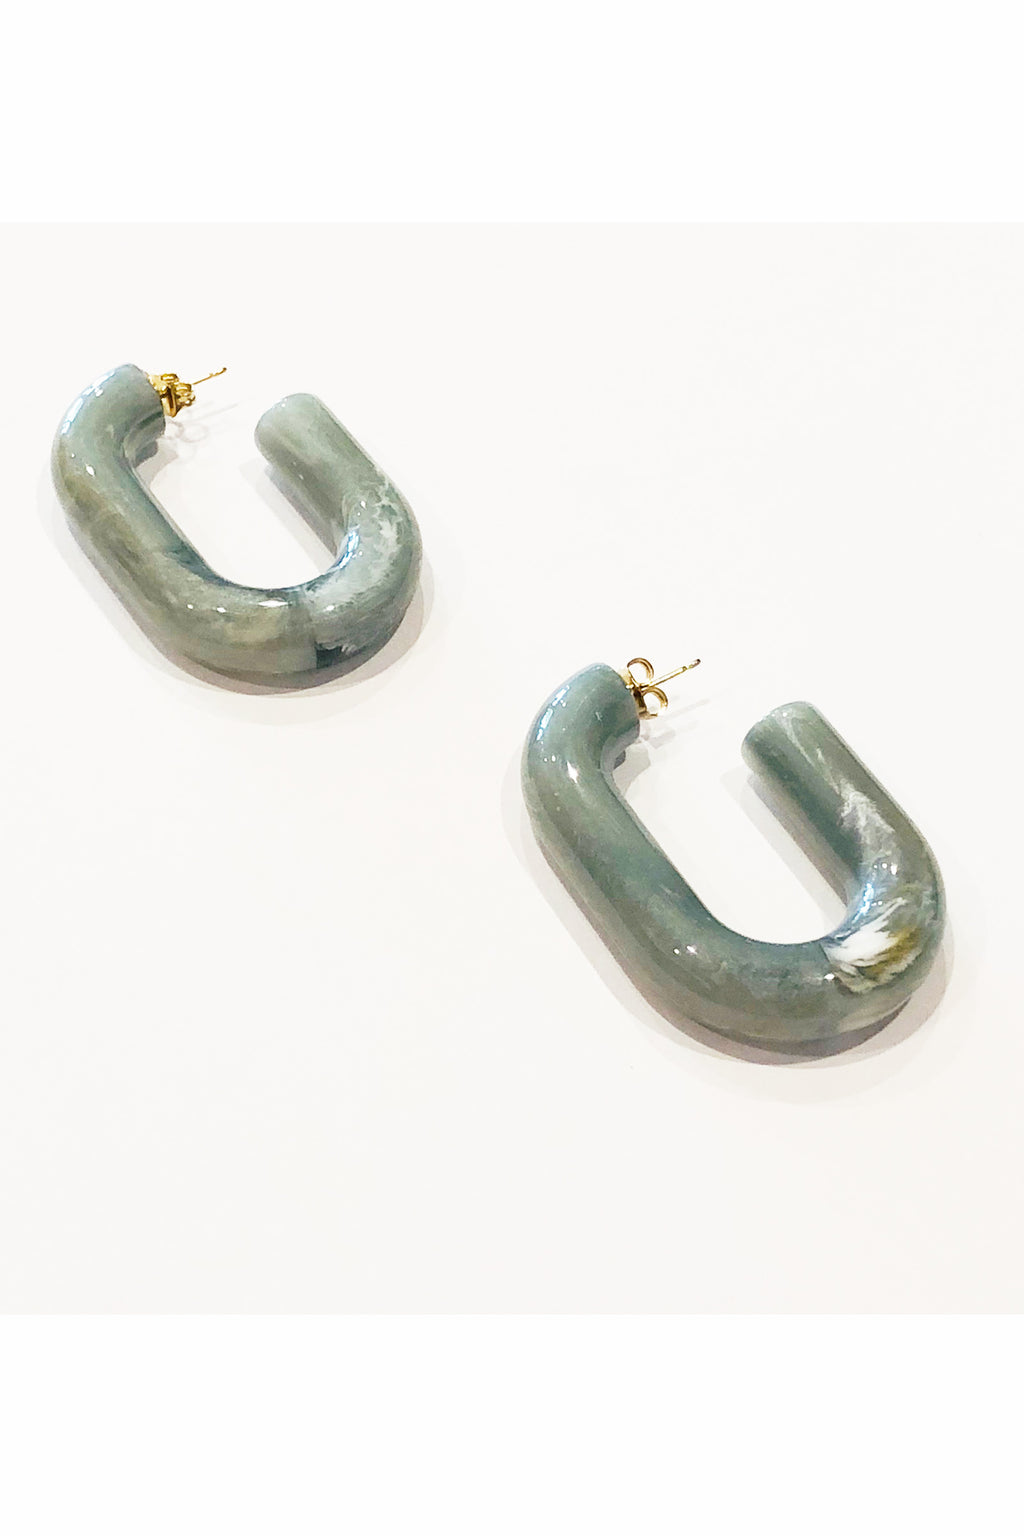 Rachel Comey Small Keeper Earrings in Turquoise Marble